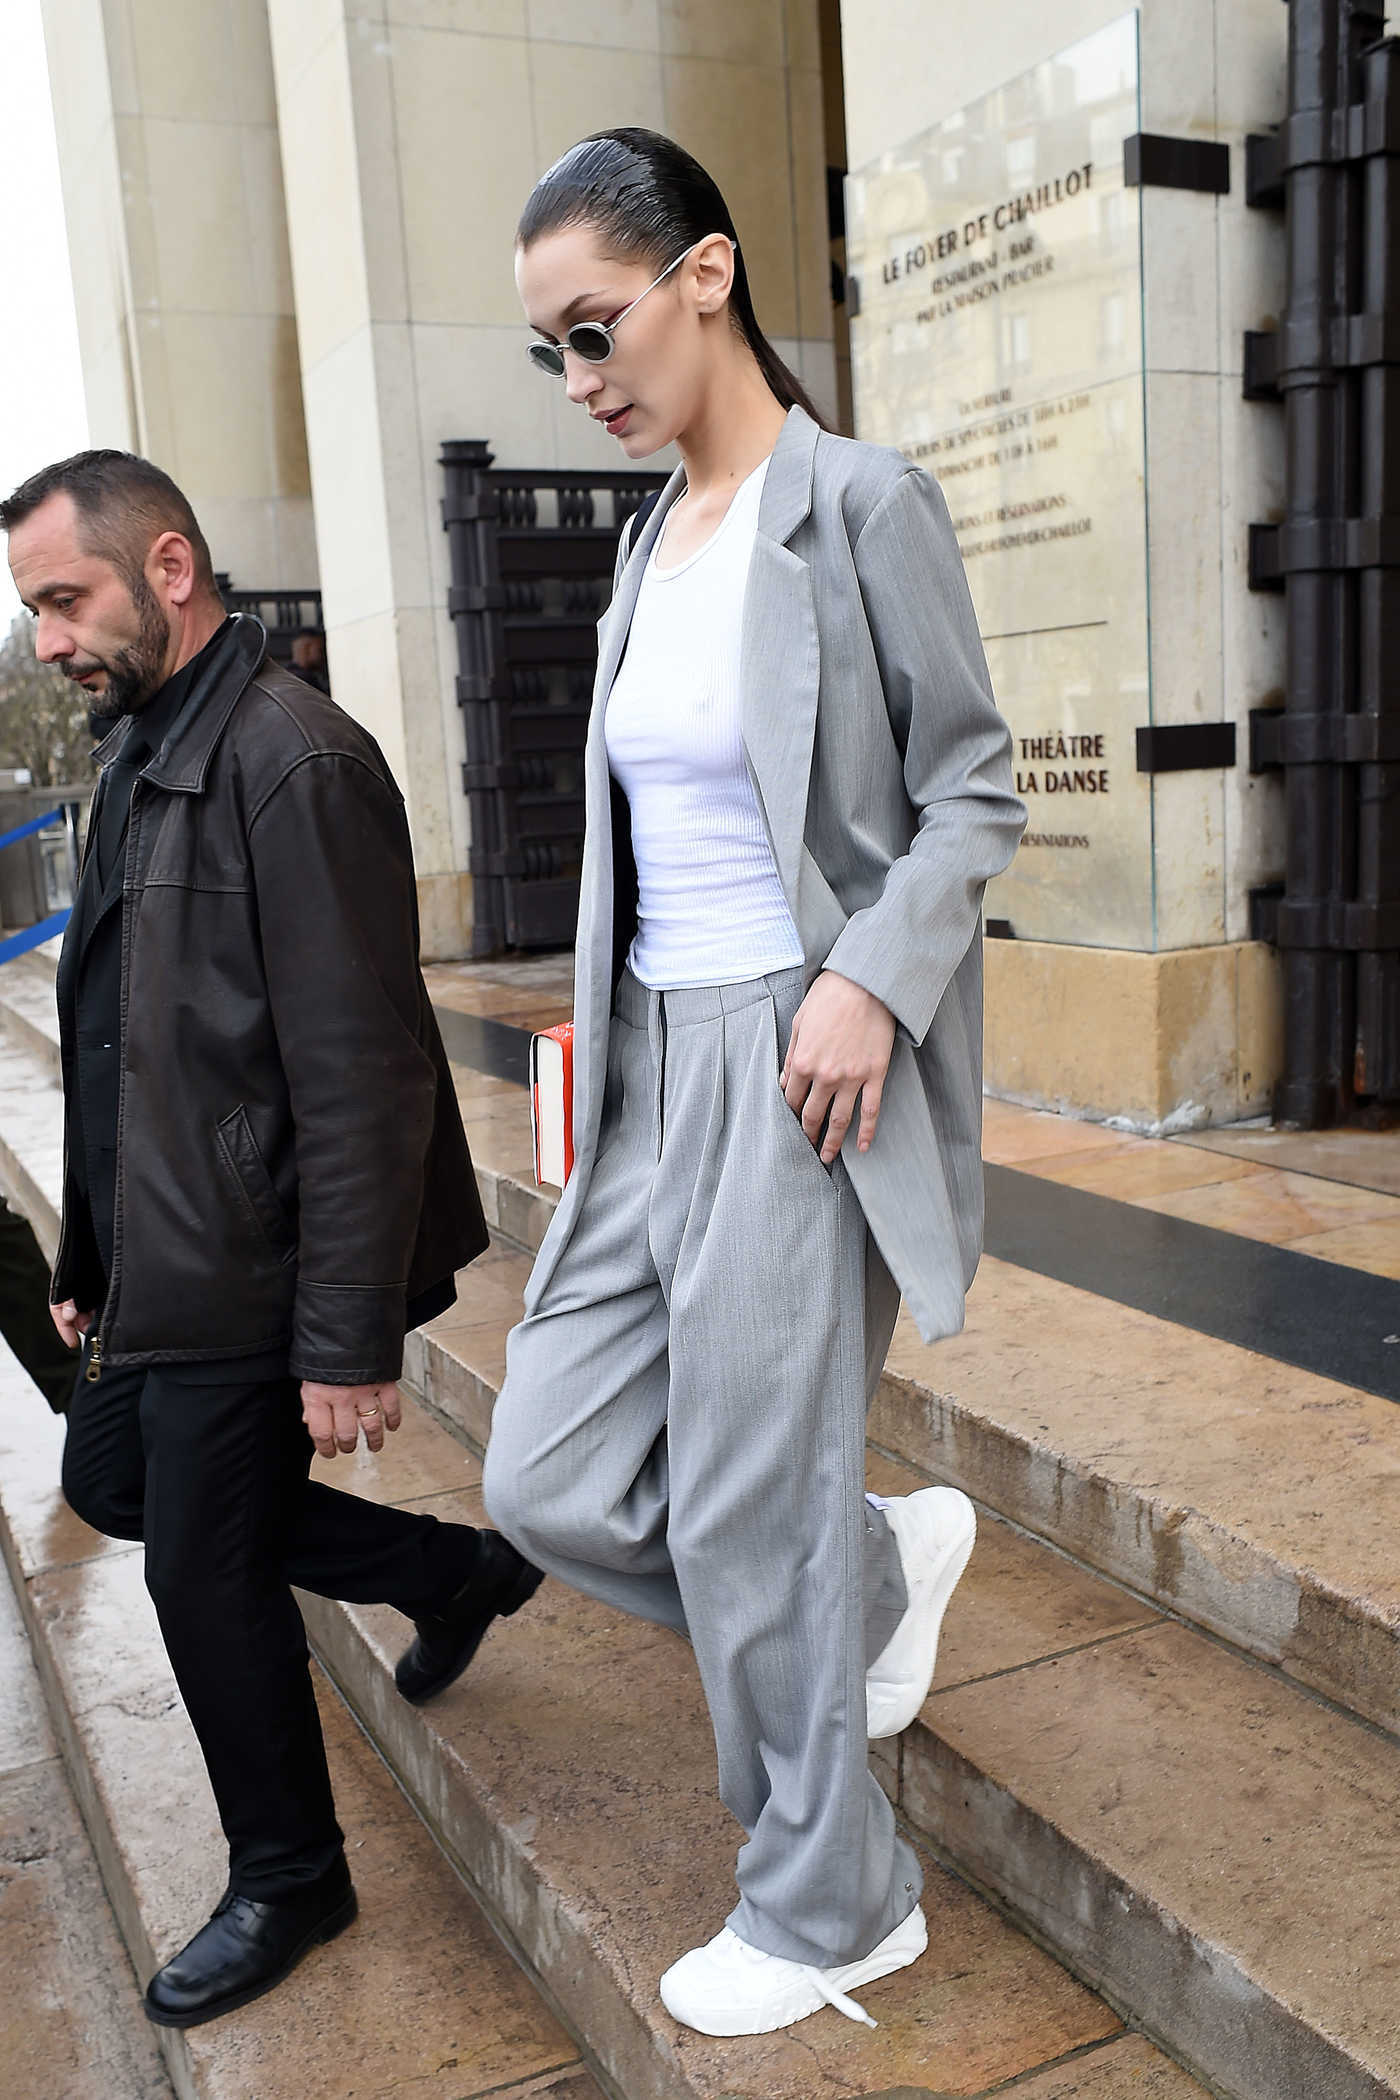 Bella Hadid in a Gray Suit Leaves Ackermann Fashion Show in Paris 03/02/2019